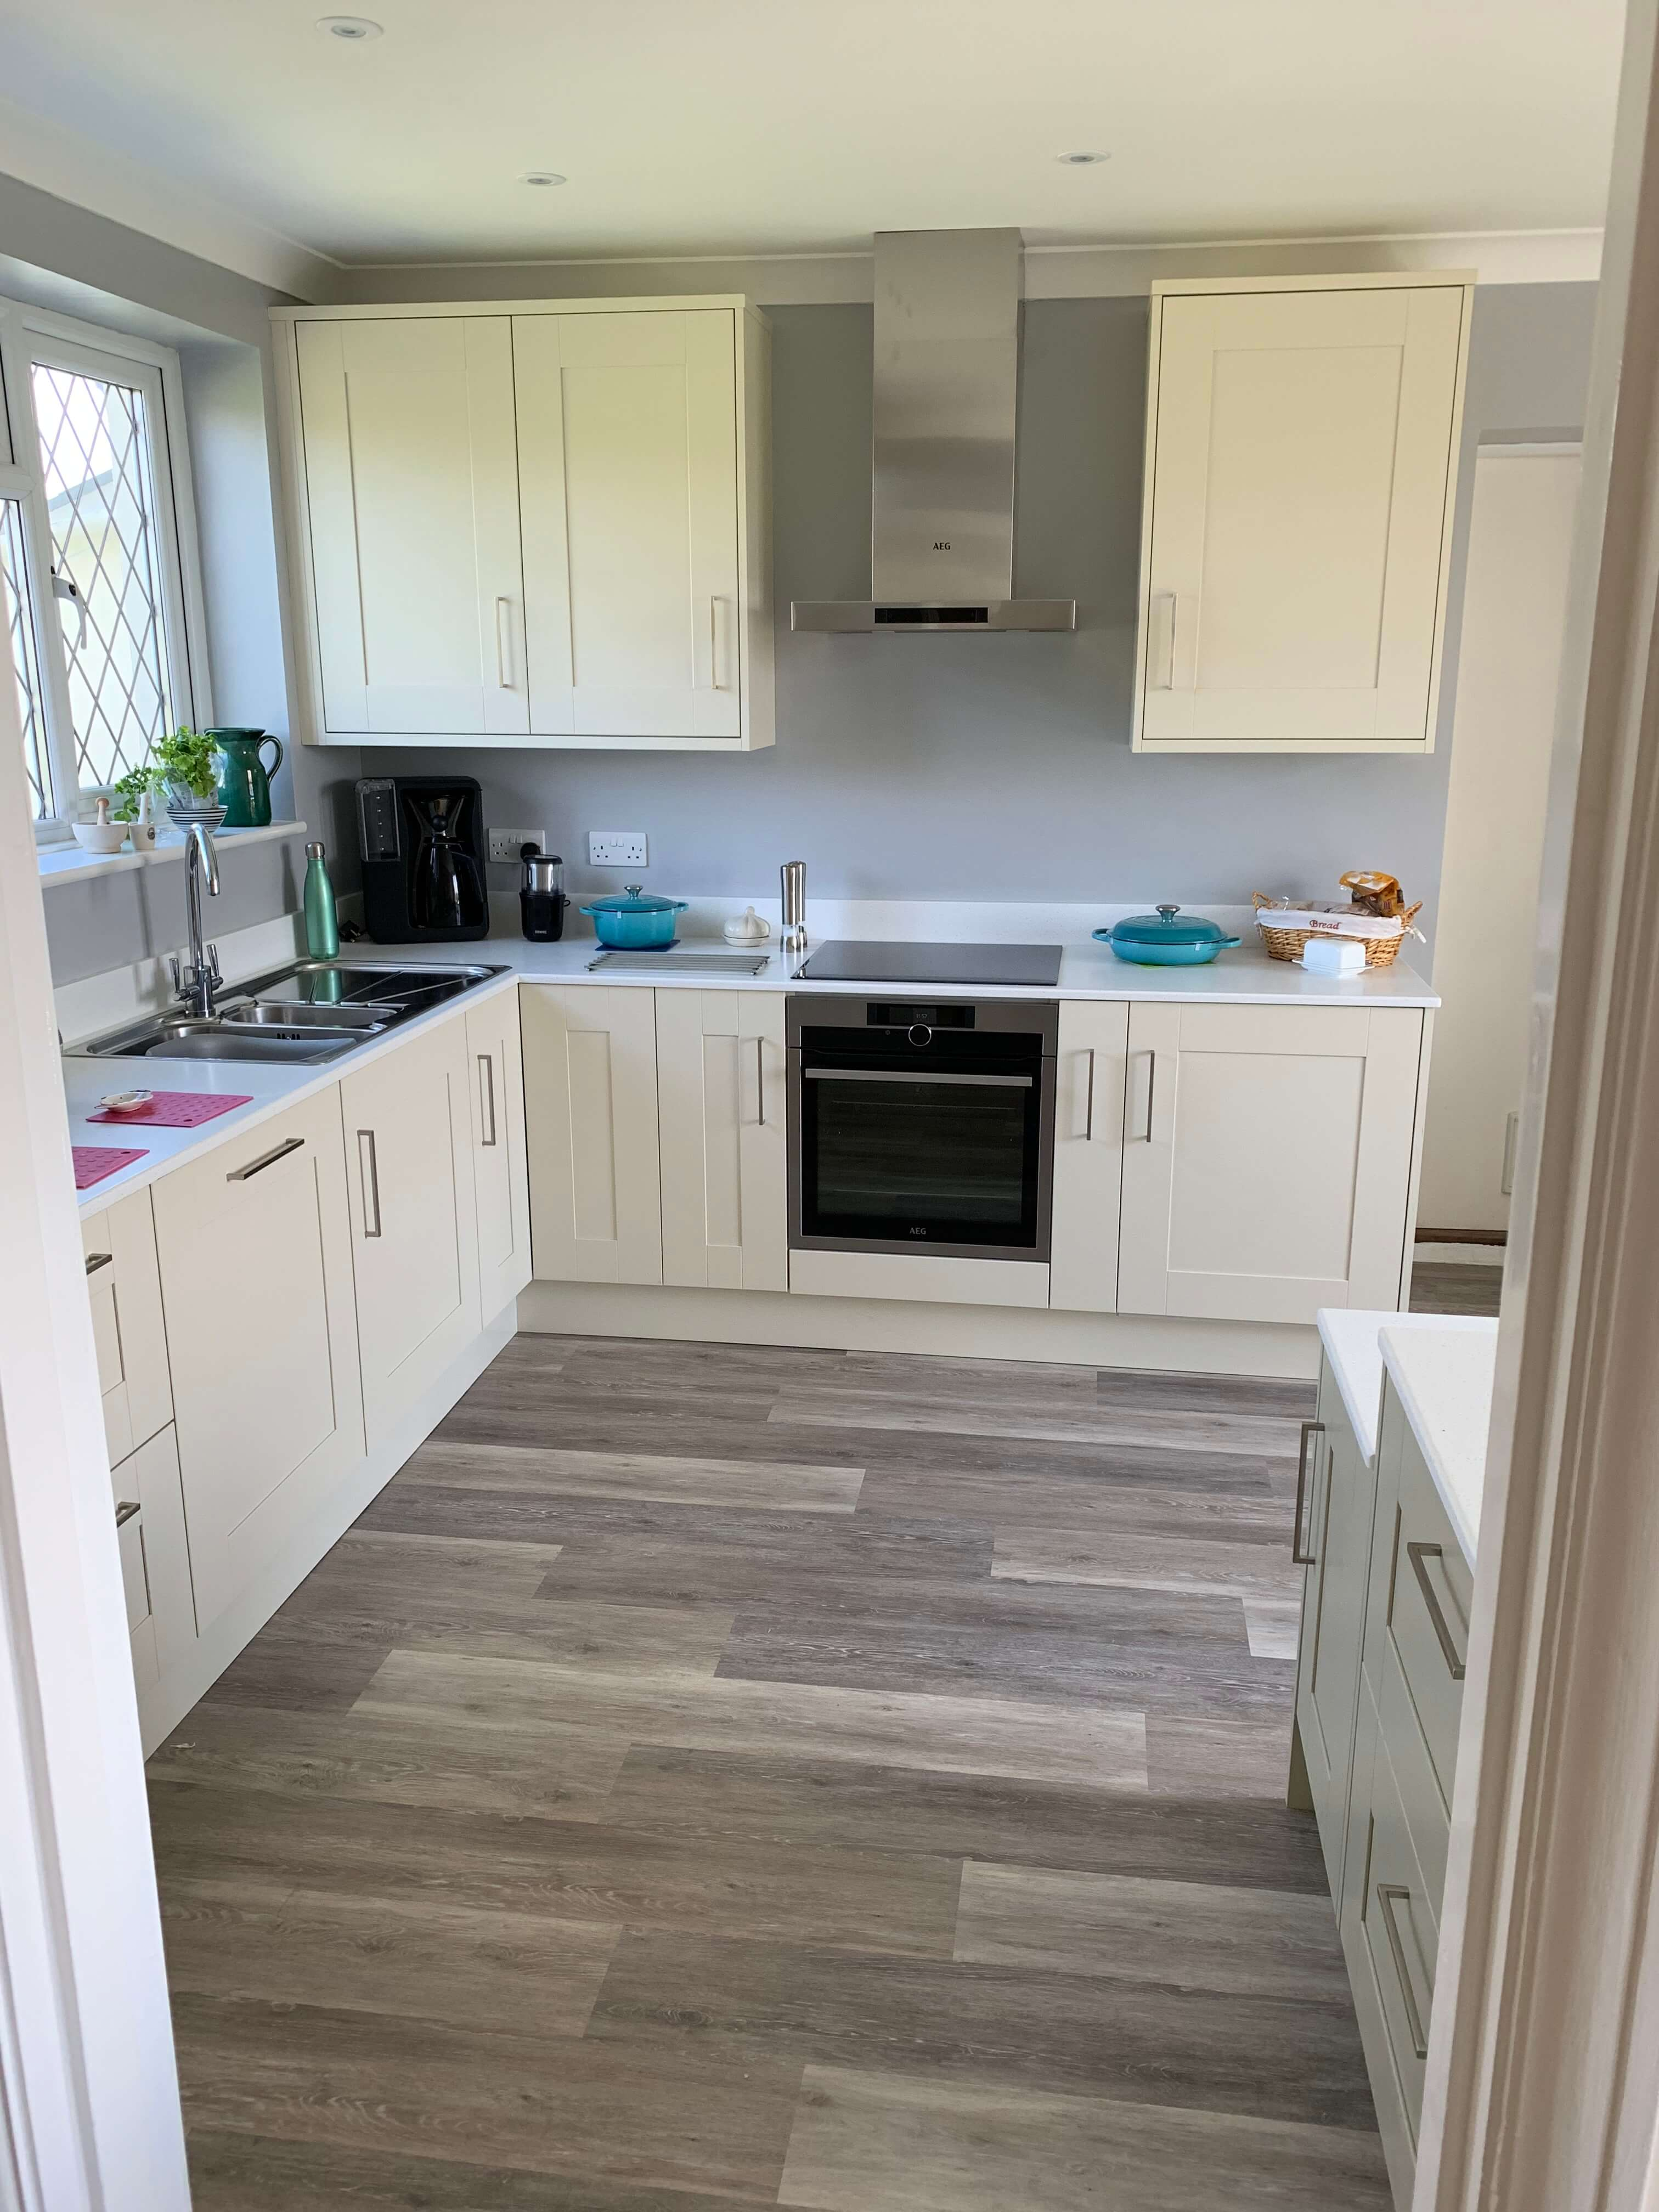 Shaker Kitchen in Alabaster and Sage